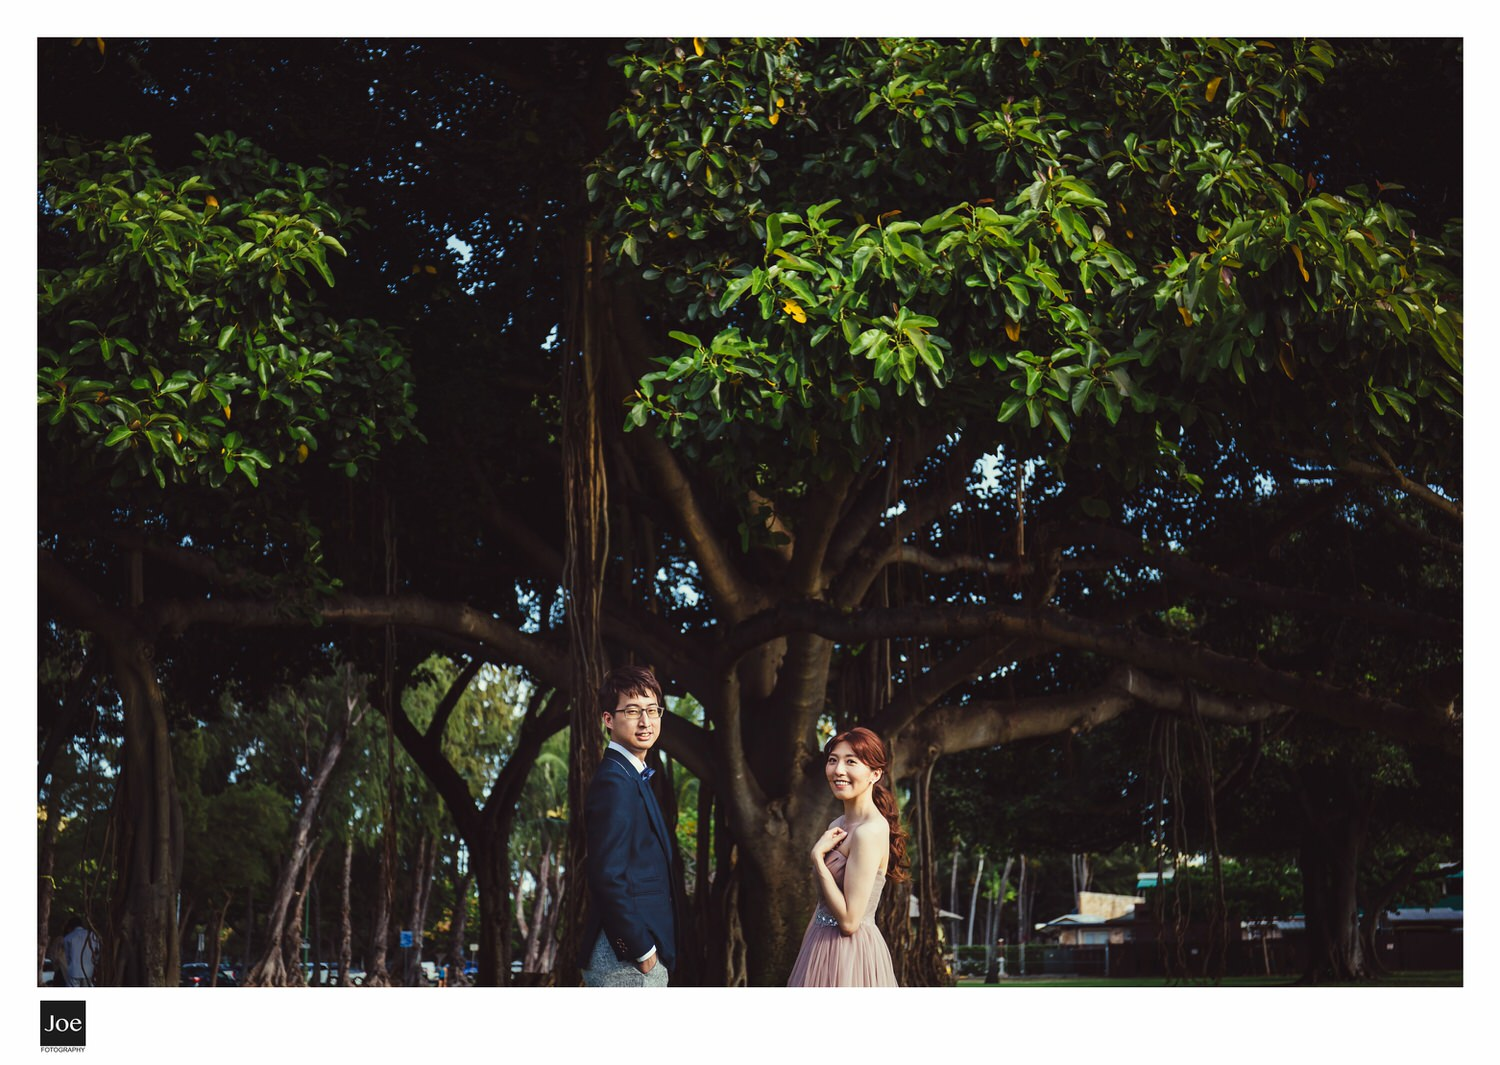 046-kapiolani-park-hawaii-pre-wedding-tiffany-tony-joe-fotography.jpg